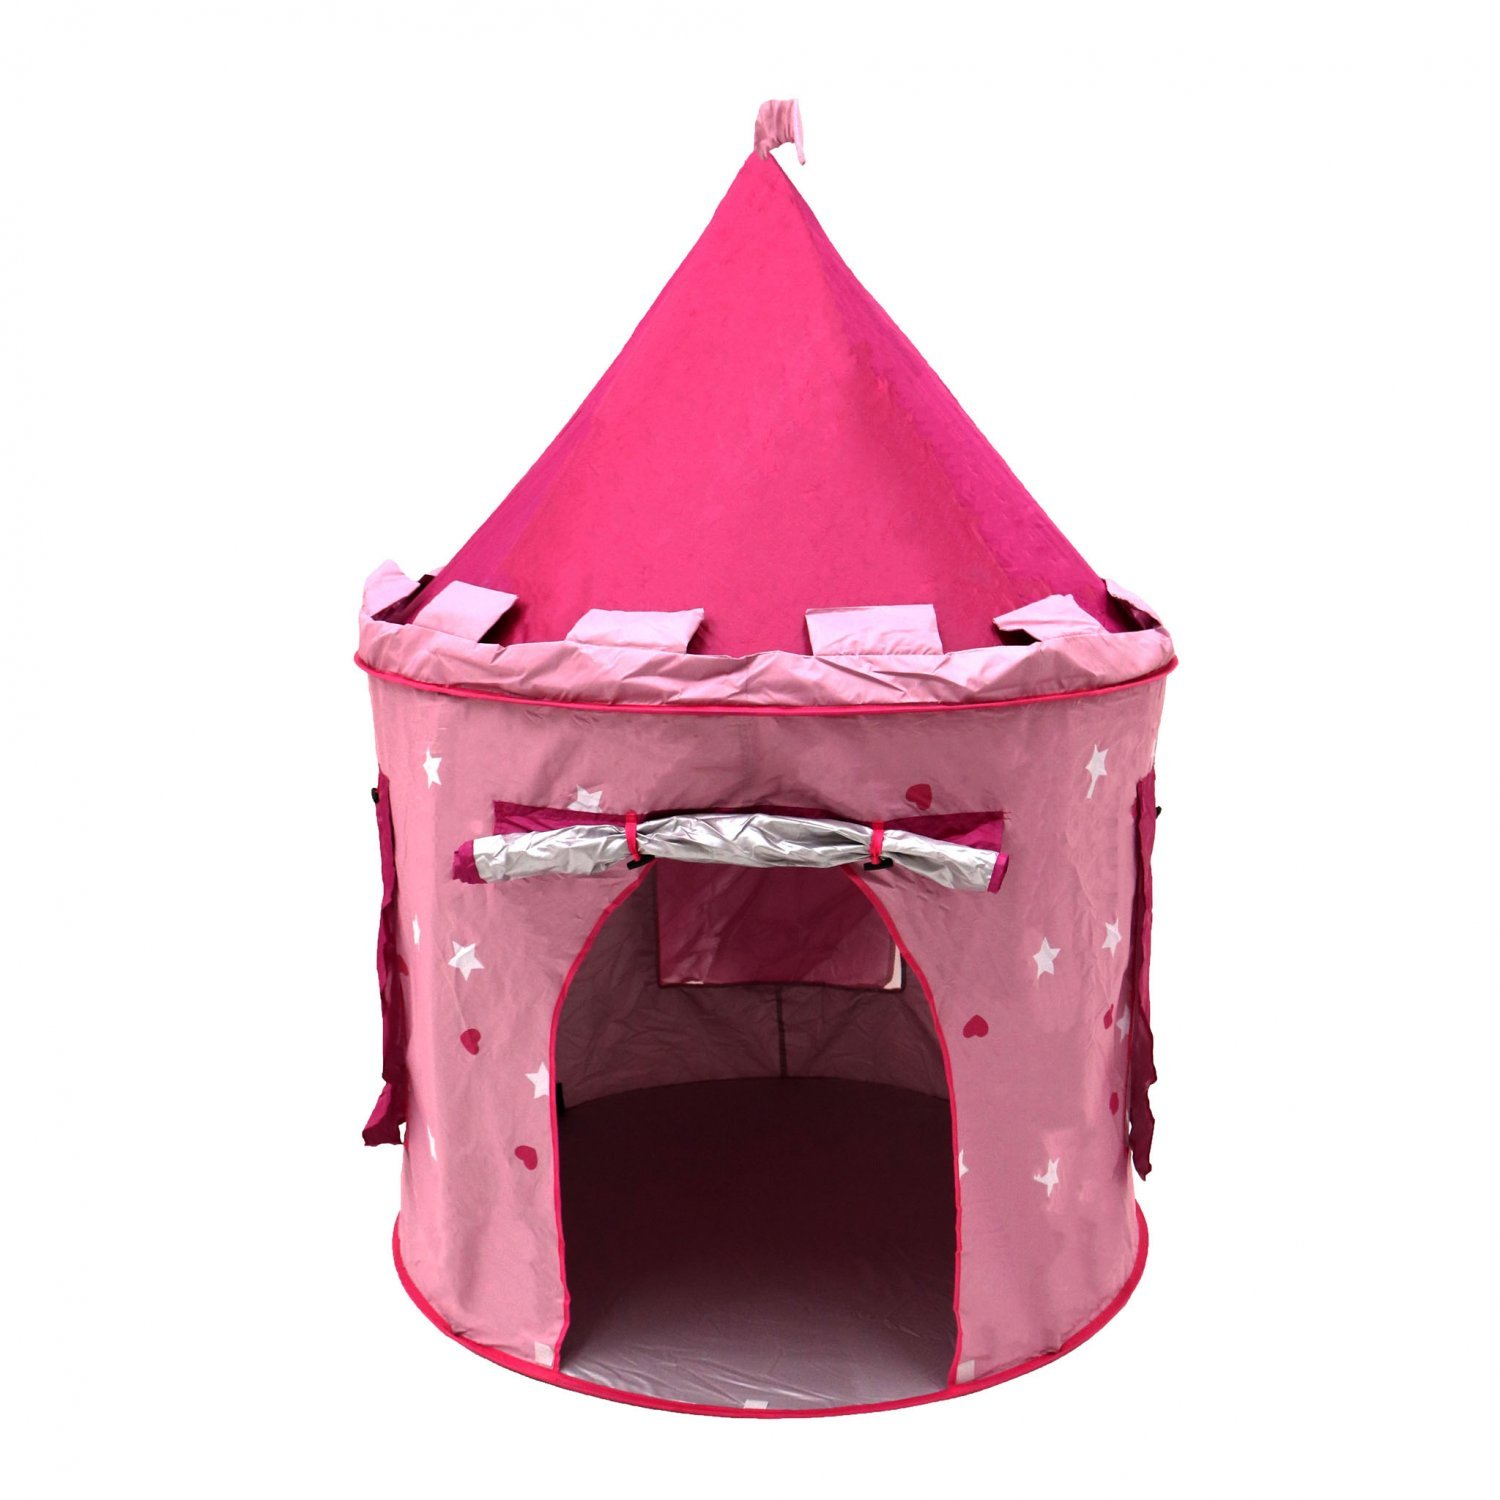 Childrens Kids Pink Castle Pop Up Play Tent Fairy Princess  sc 1 st  Oypla & Childrens Kids Pink Castle Pop Up Play Tent Fairy Princess ...